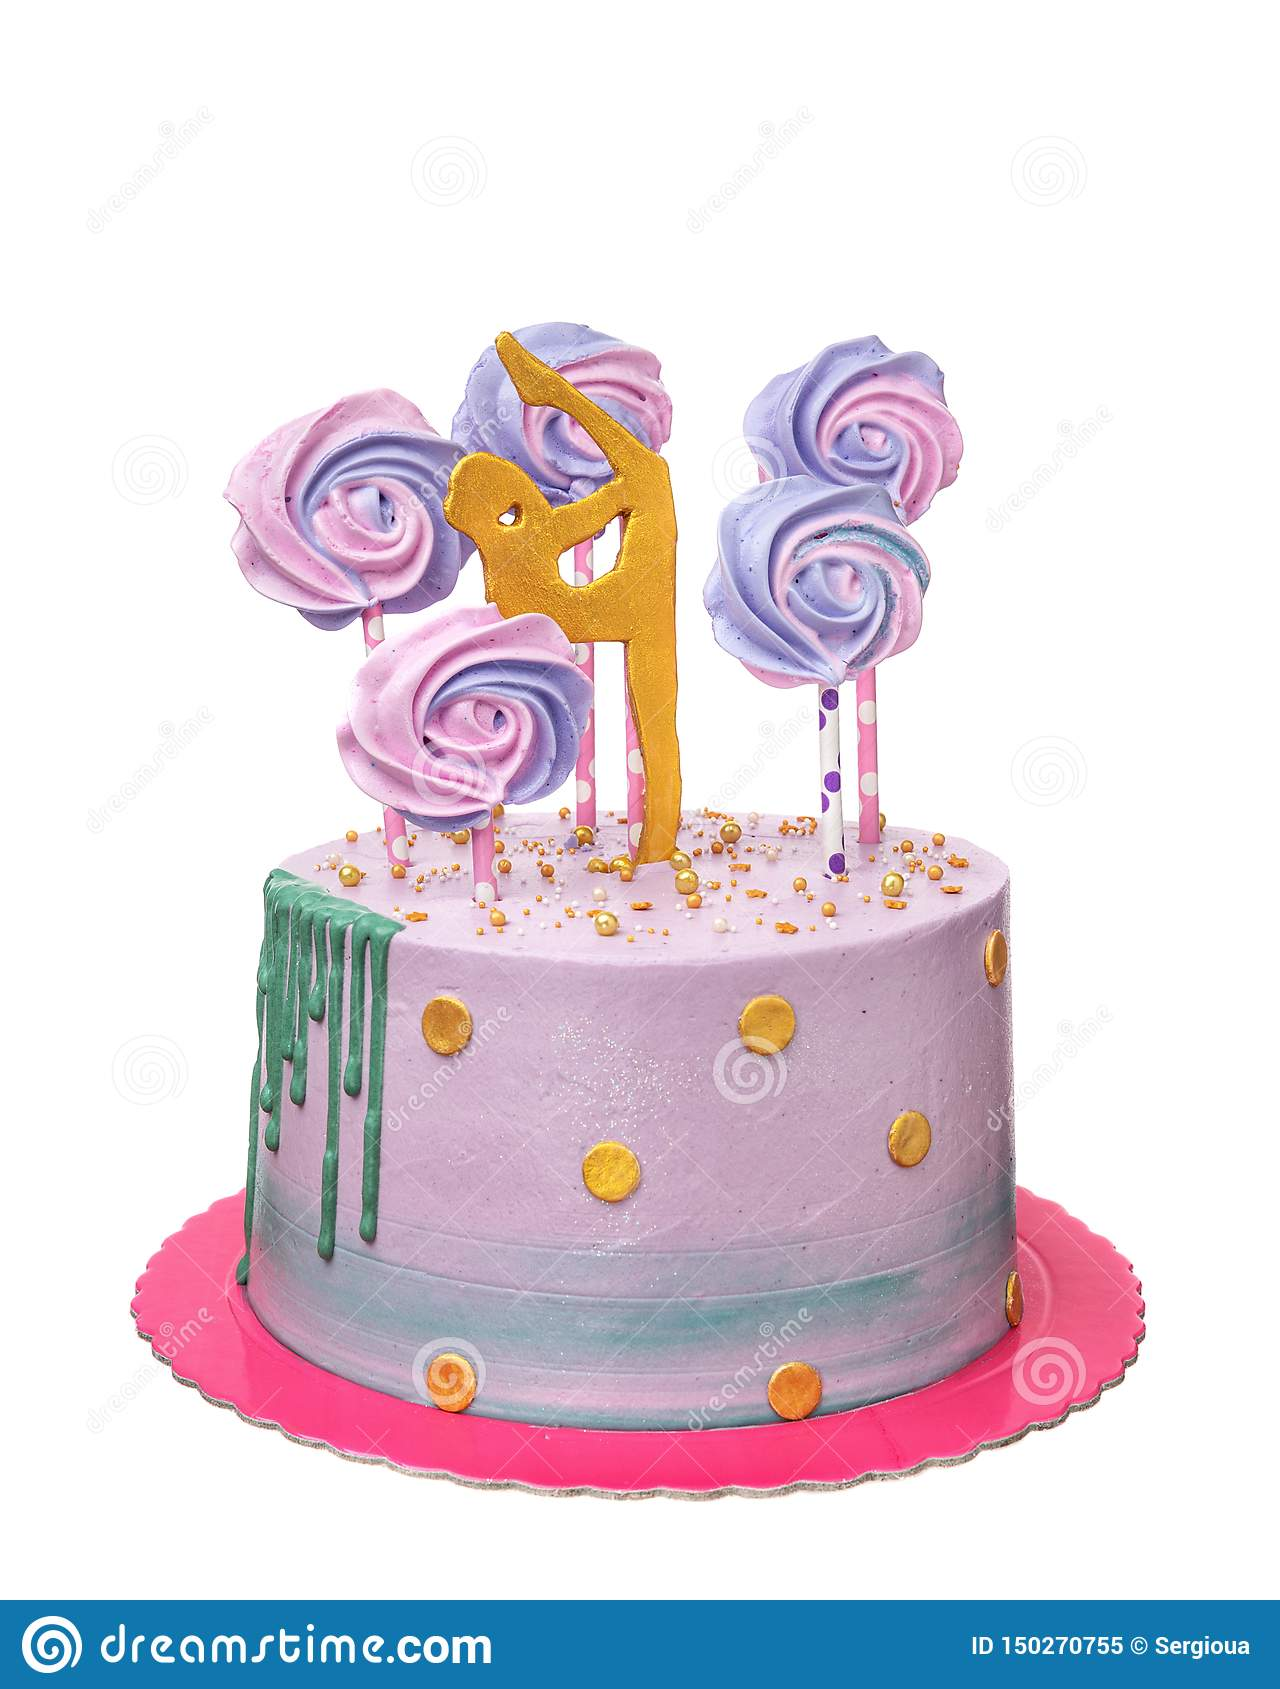 Astonishing A Birthday Cake For A Girl Gymnast Stock Image Image Of Personalised Birthday Cards Petedlily Jamesorg